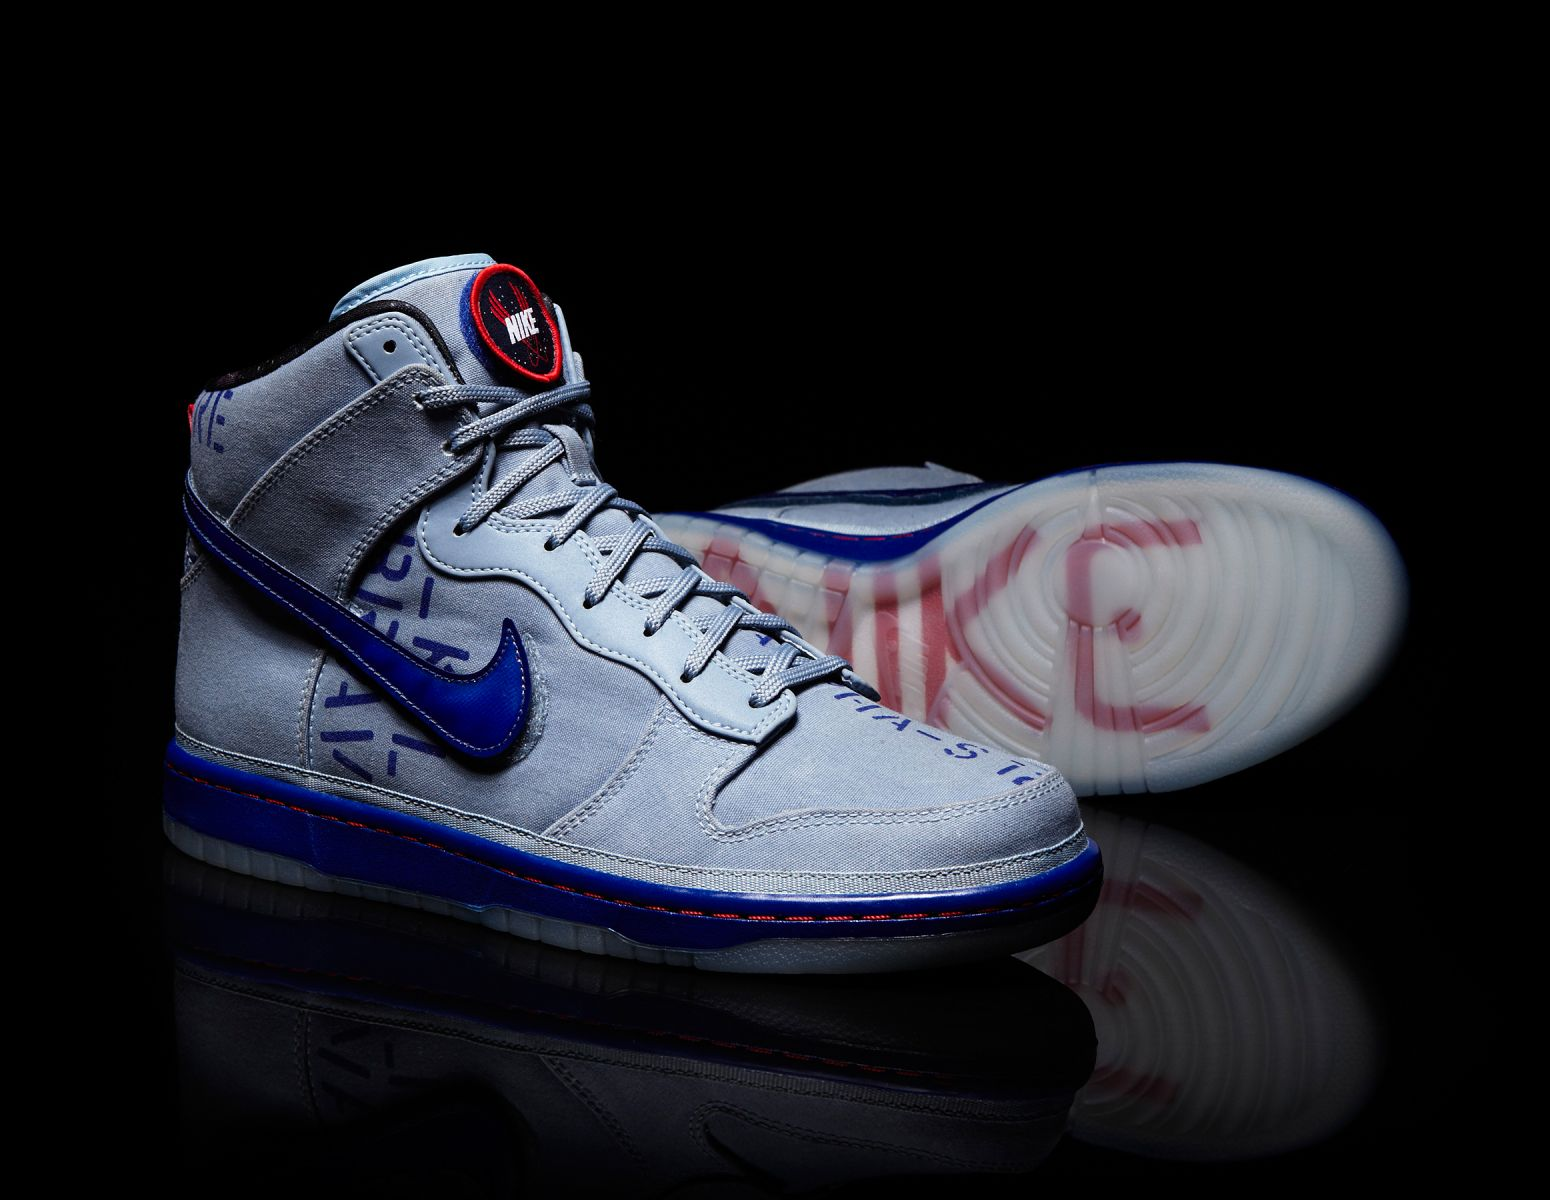 7a4932370c40 ... canada nsw dunk high premium galaxy all star pack official images  release details sole shop this